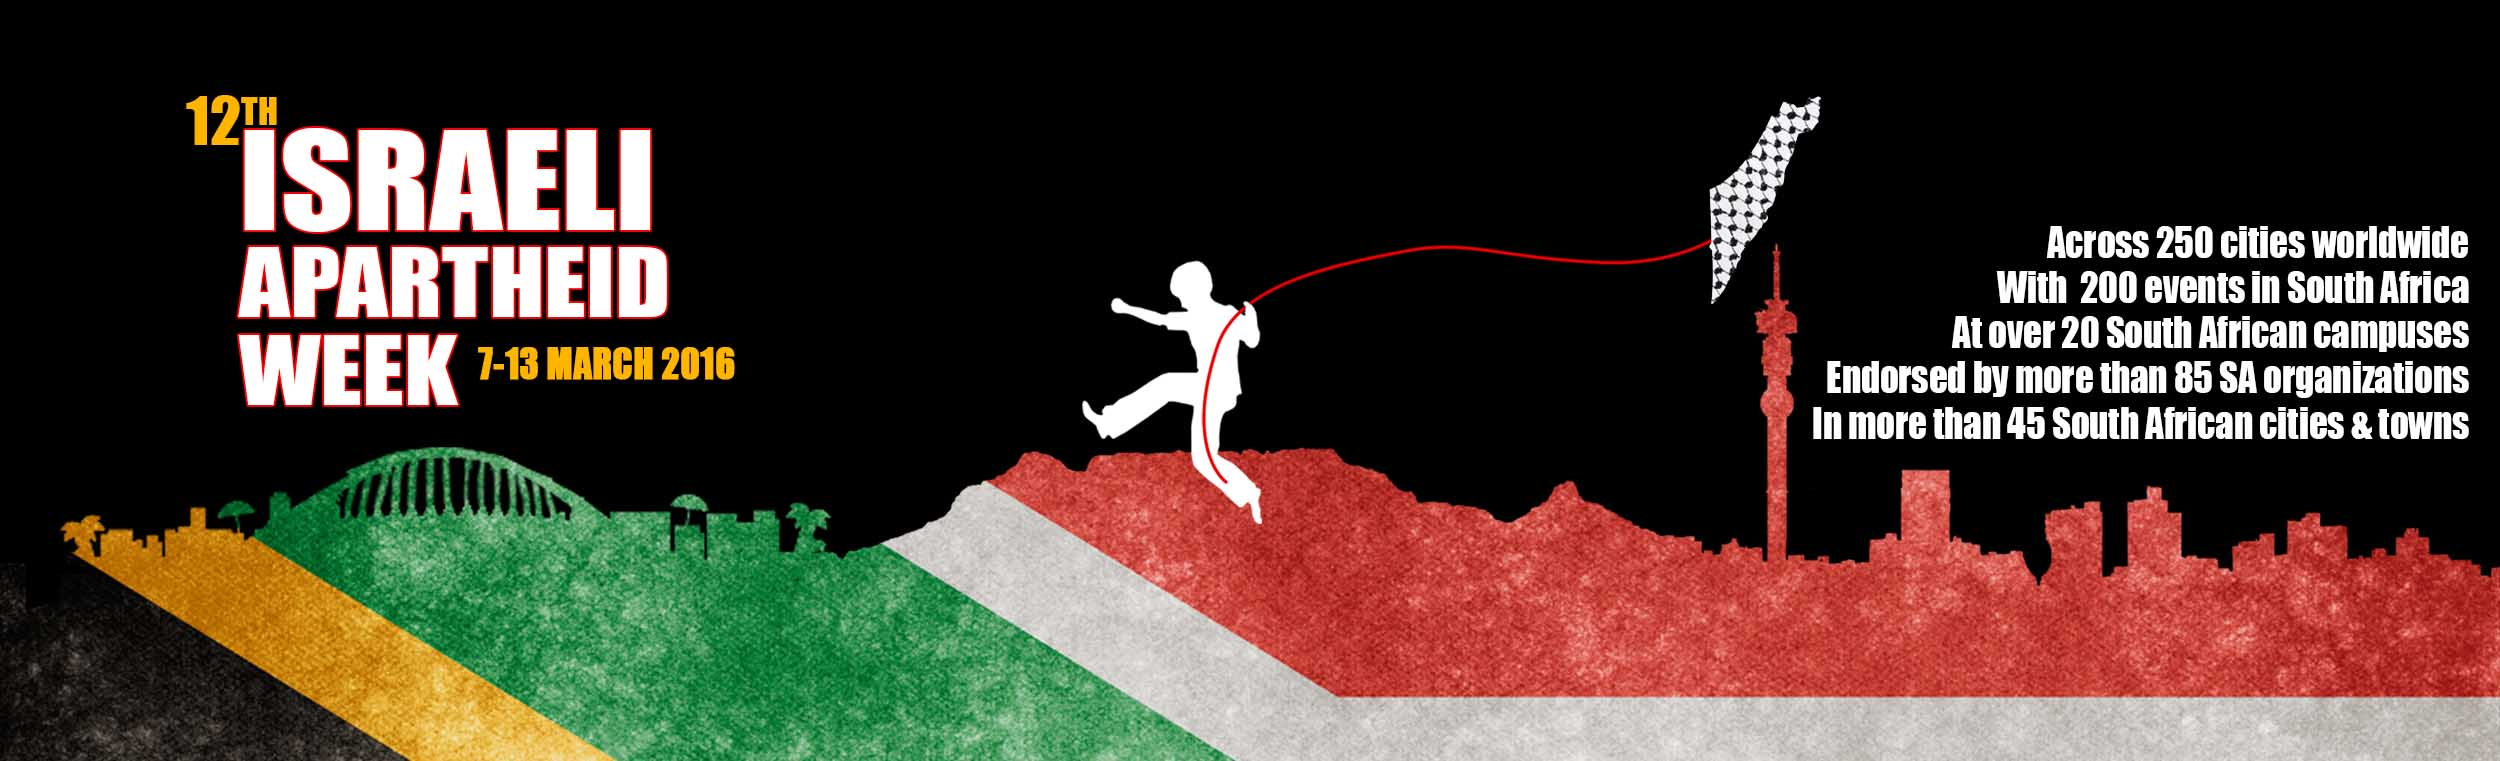 BDS | South Africa